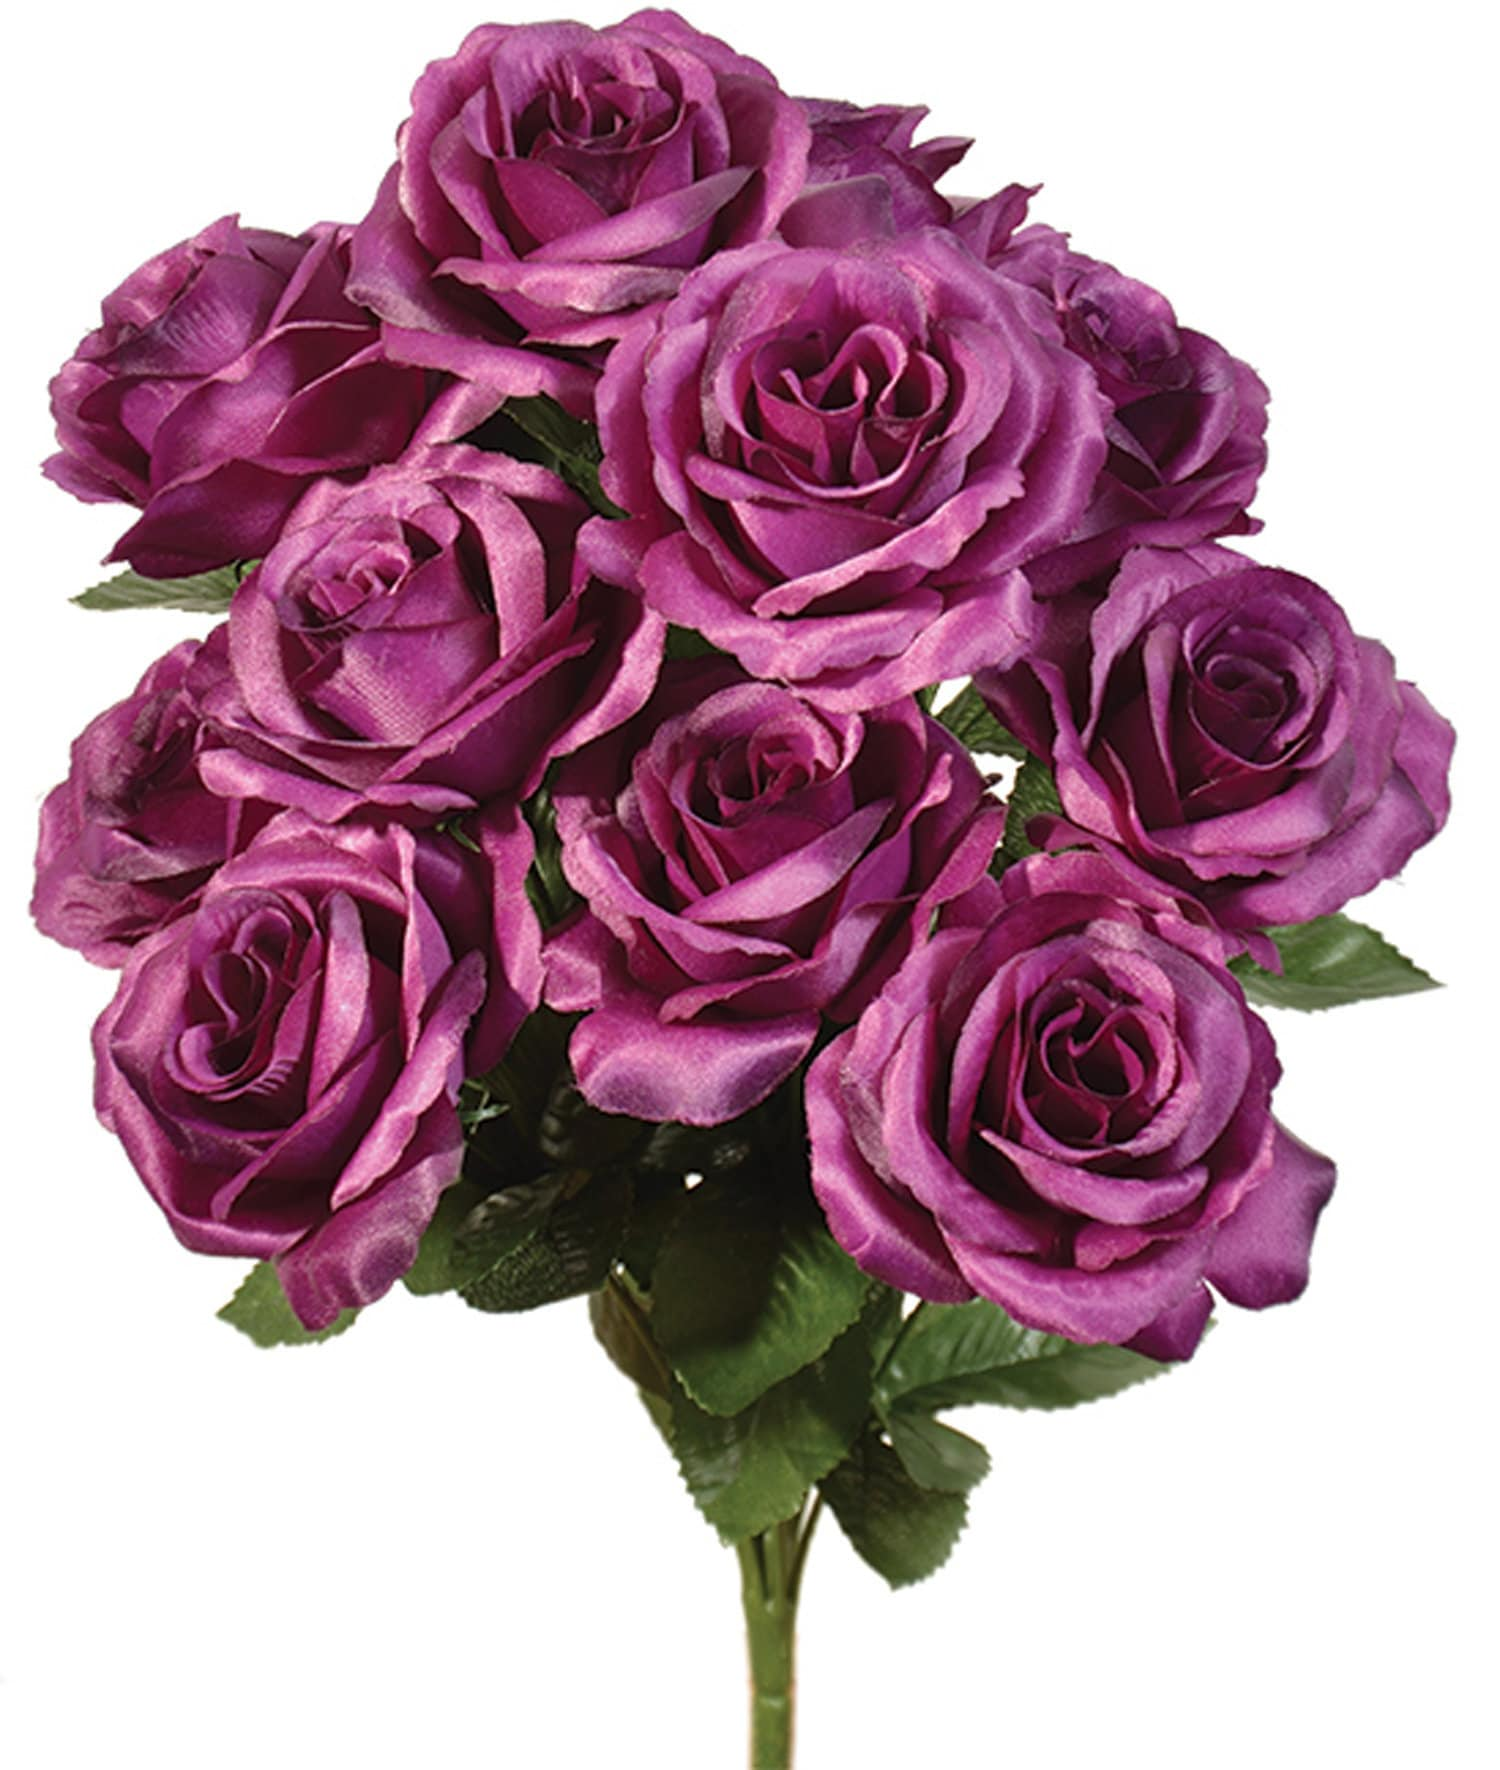 12 Open Grape Purple Roses In Bouquet Bush Artificial Silk Etsy